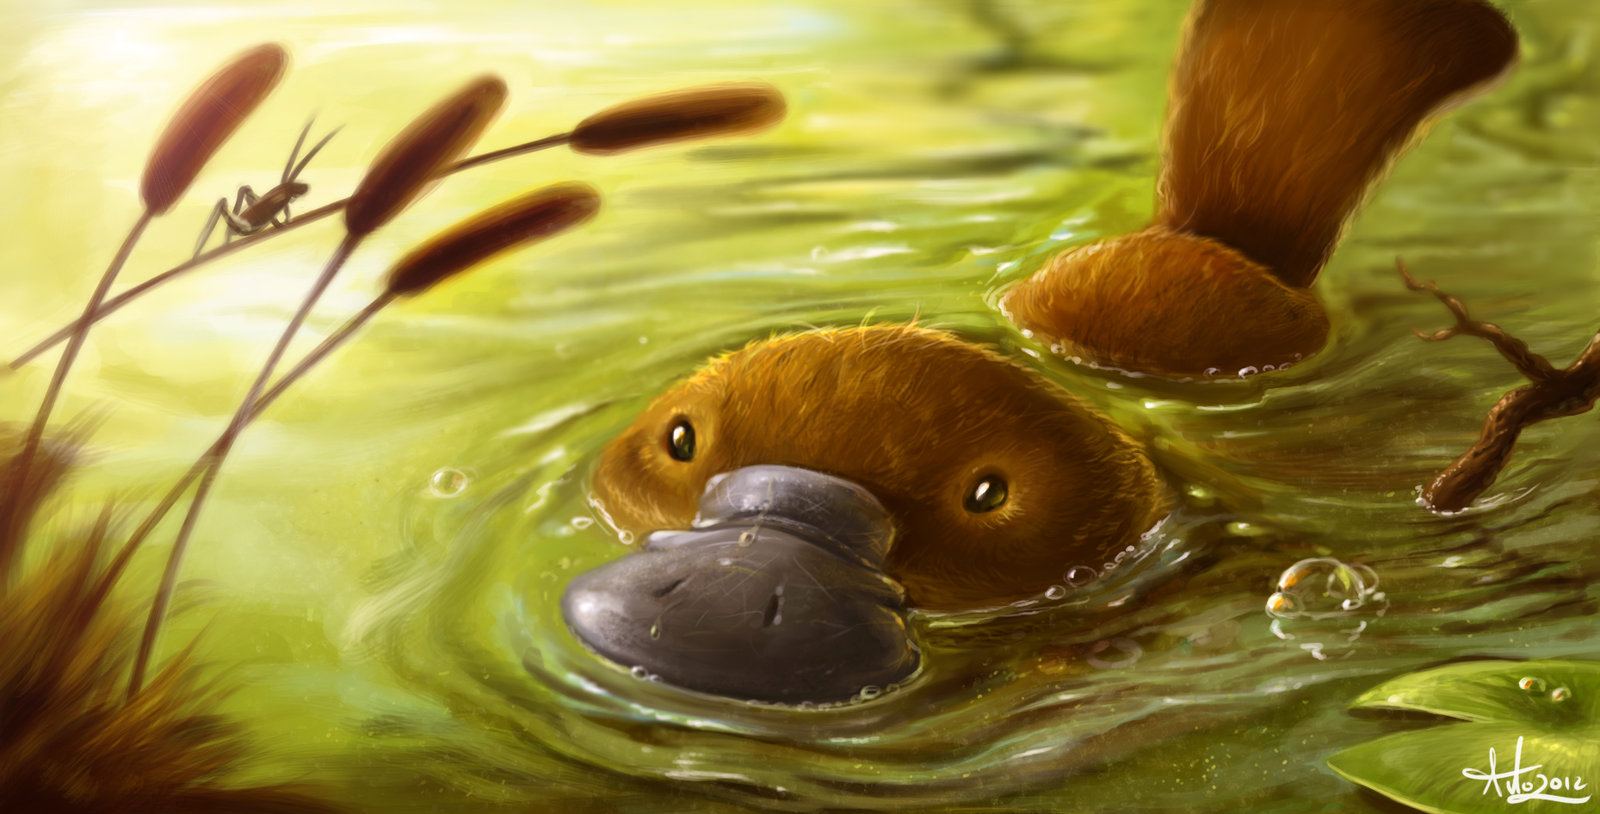 Hunting Iphone Wallpaper Platypus Wallpaper And Background Image 1600x814 Id 441639